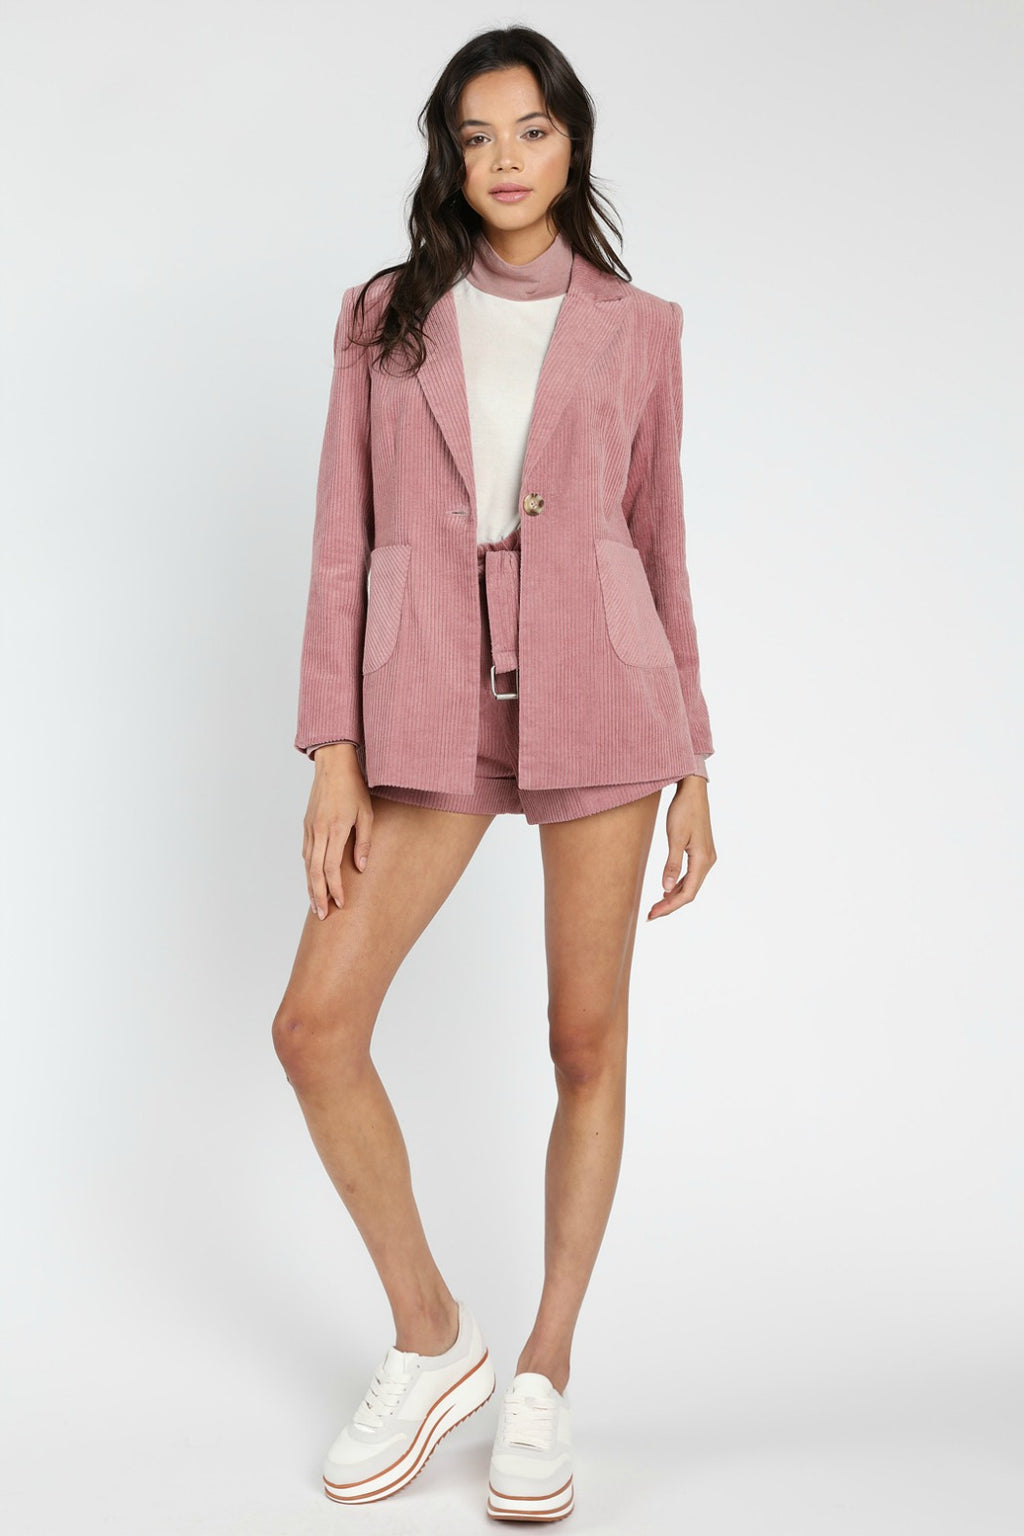 Honey Punch Stardust Corduroy Blazer in Mauve